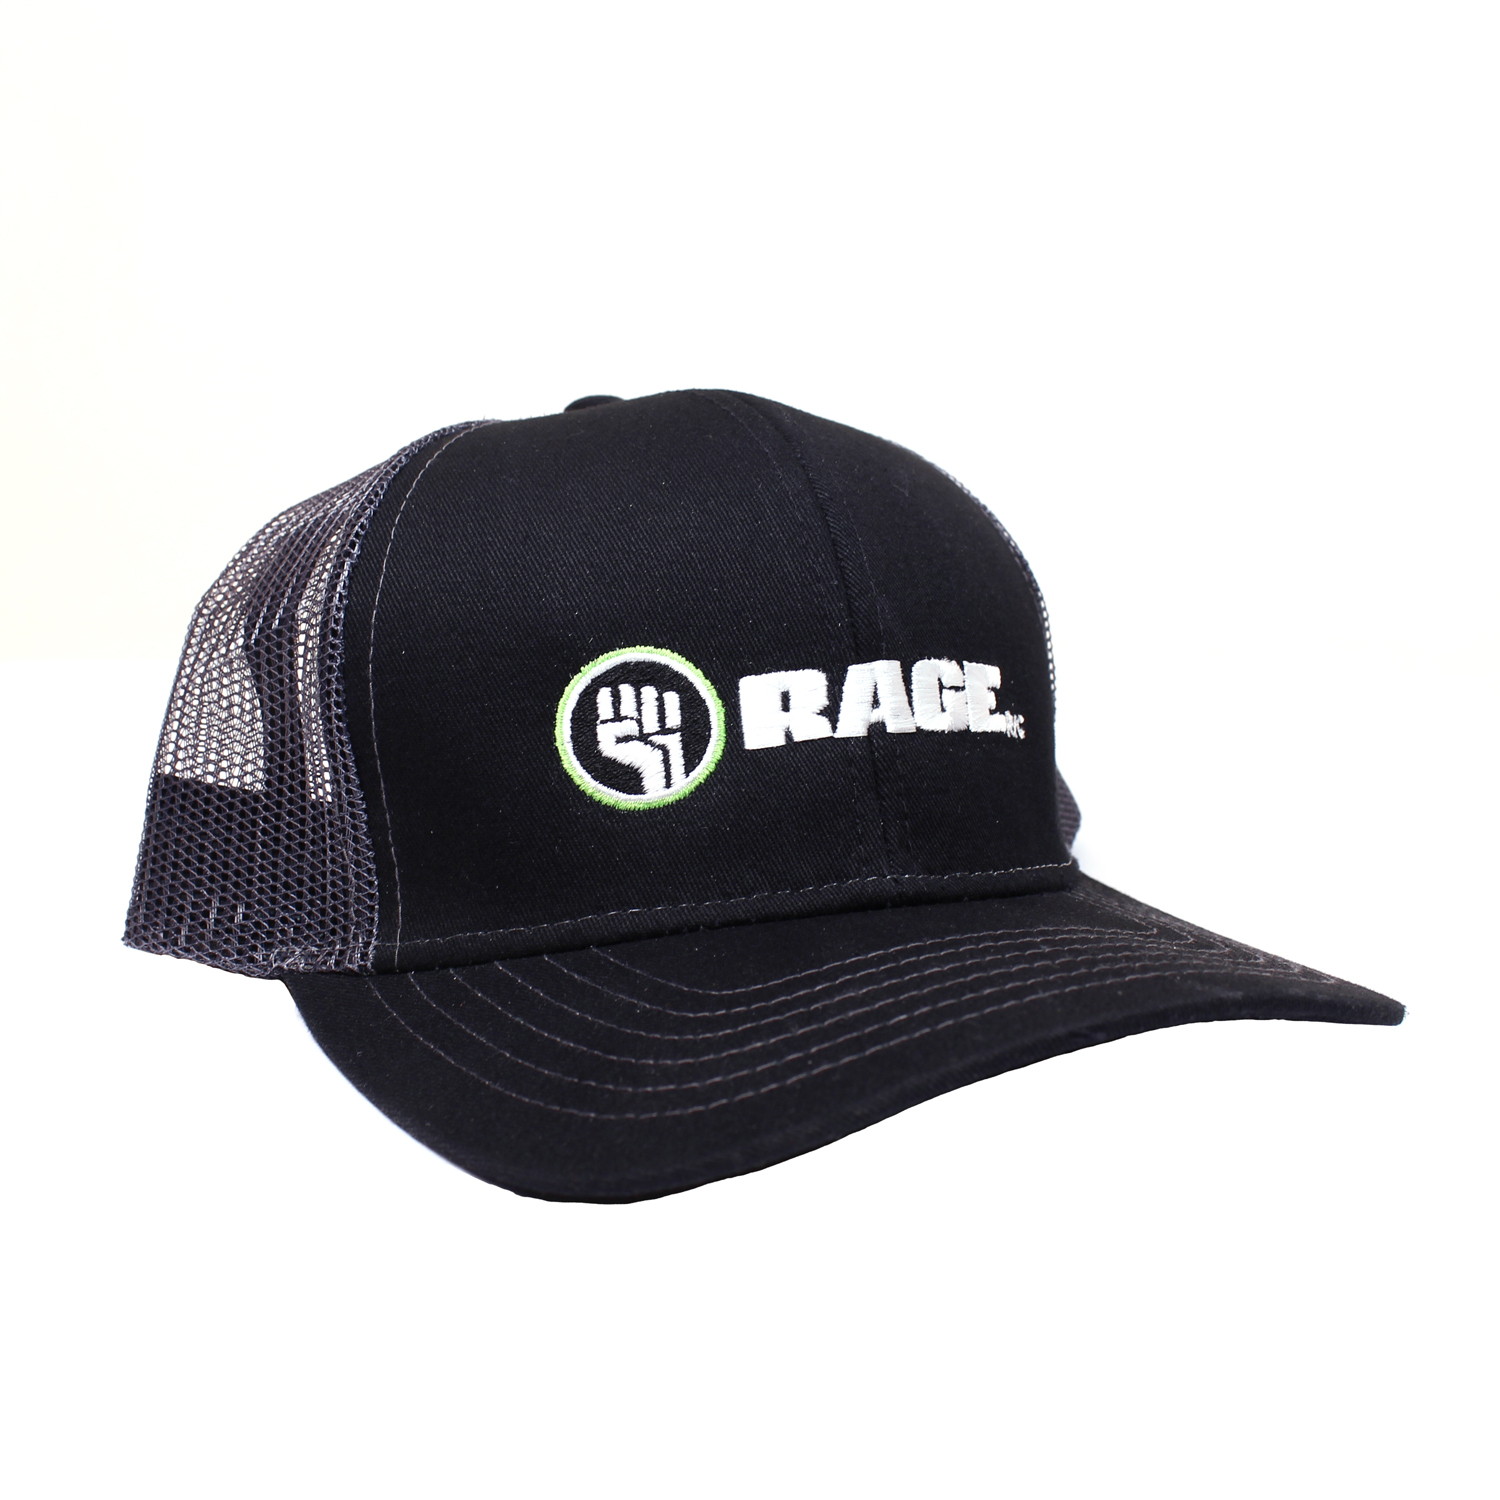 Rage R/C Cotton Twill Cap